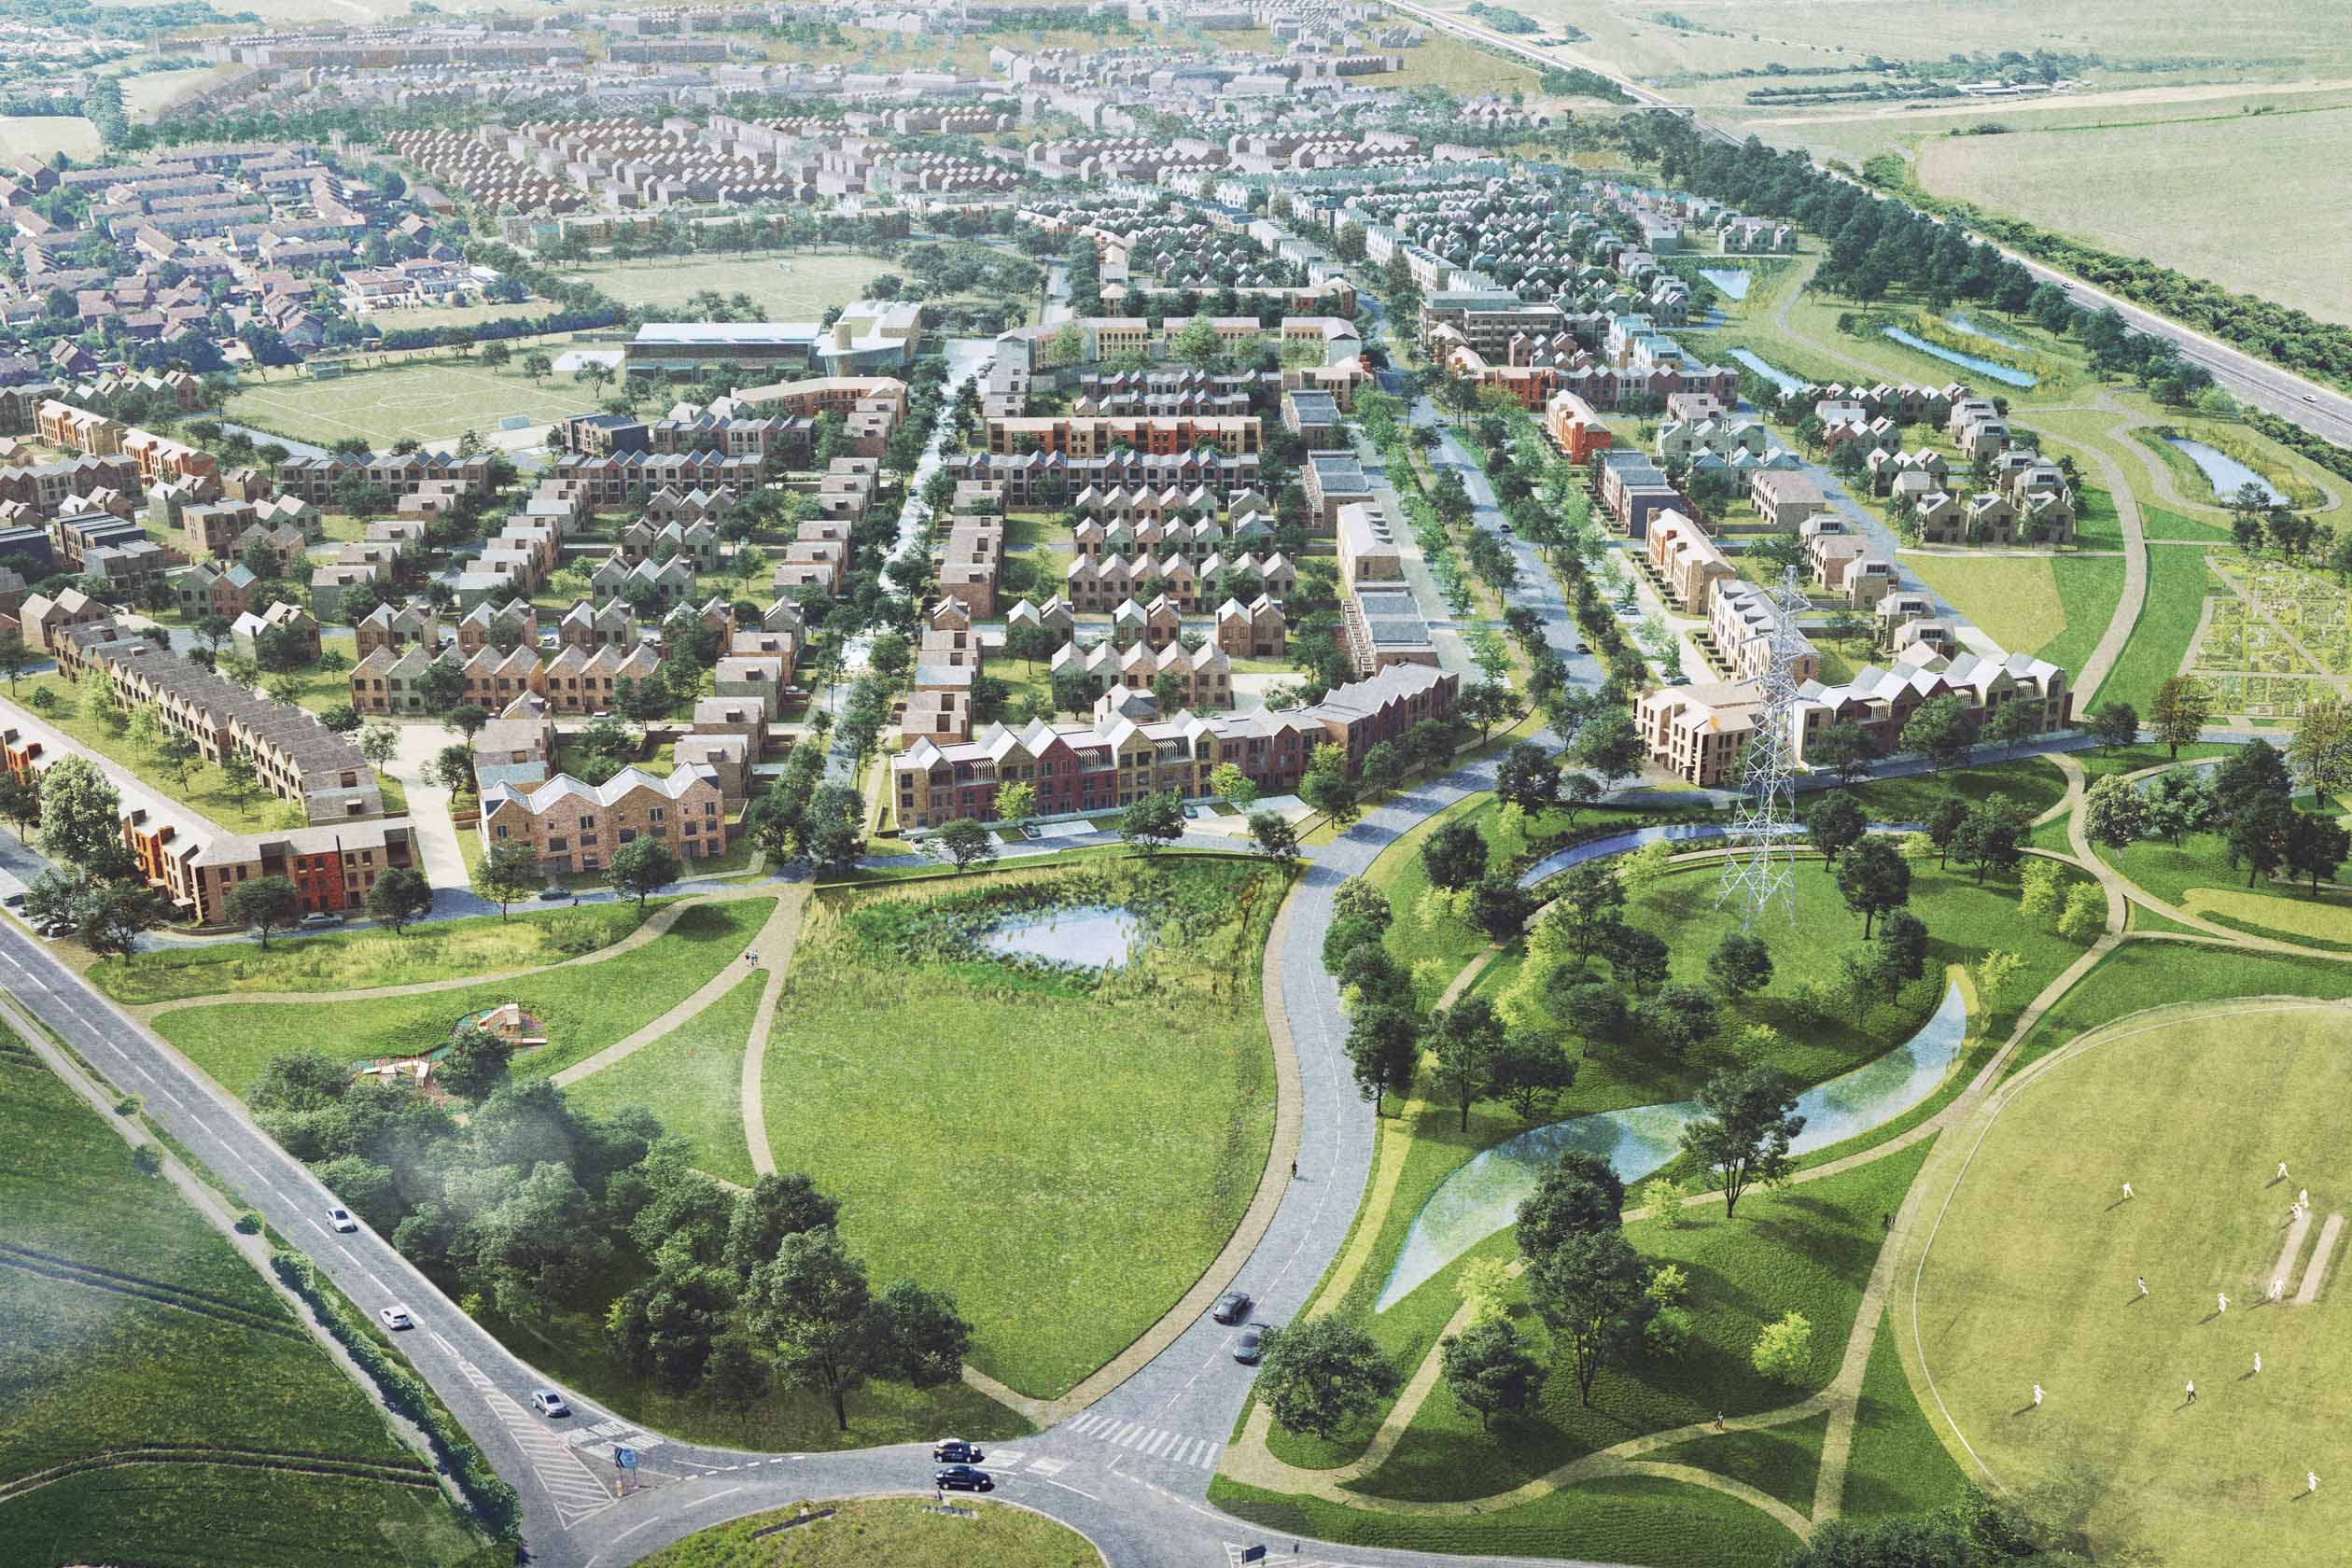 Barratt Homes at Linmere, Ariel View over the development